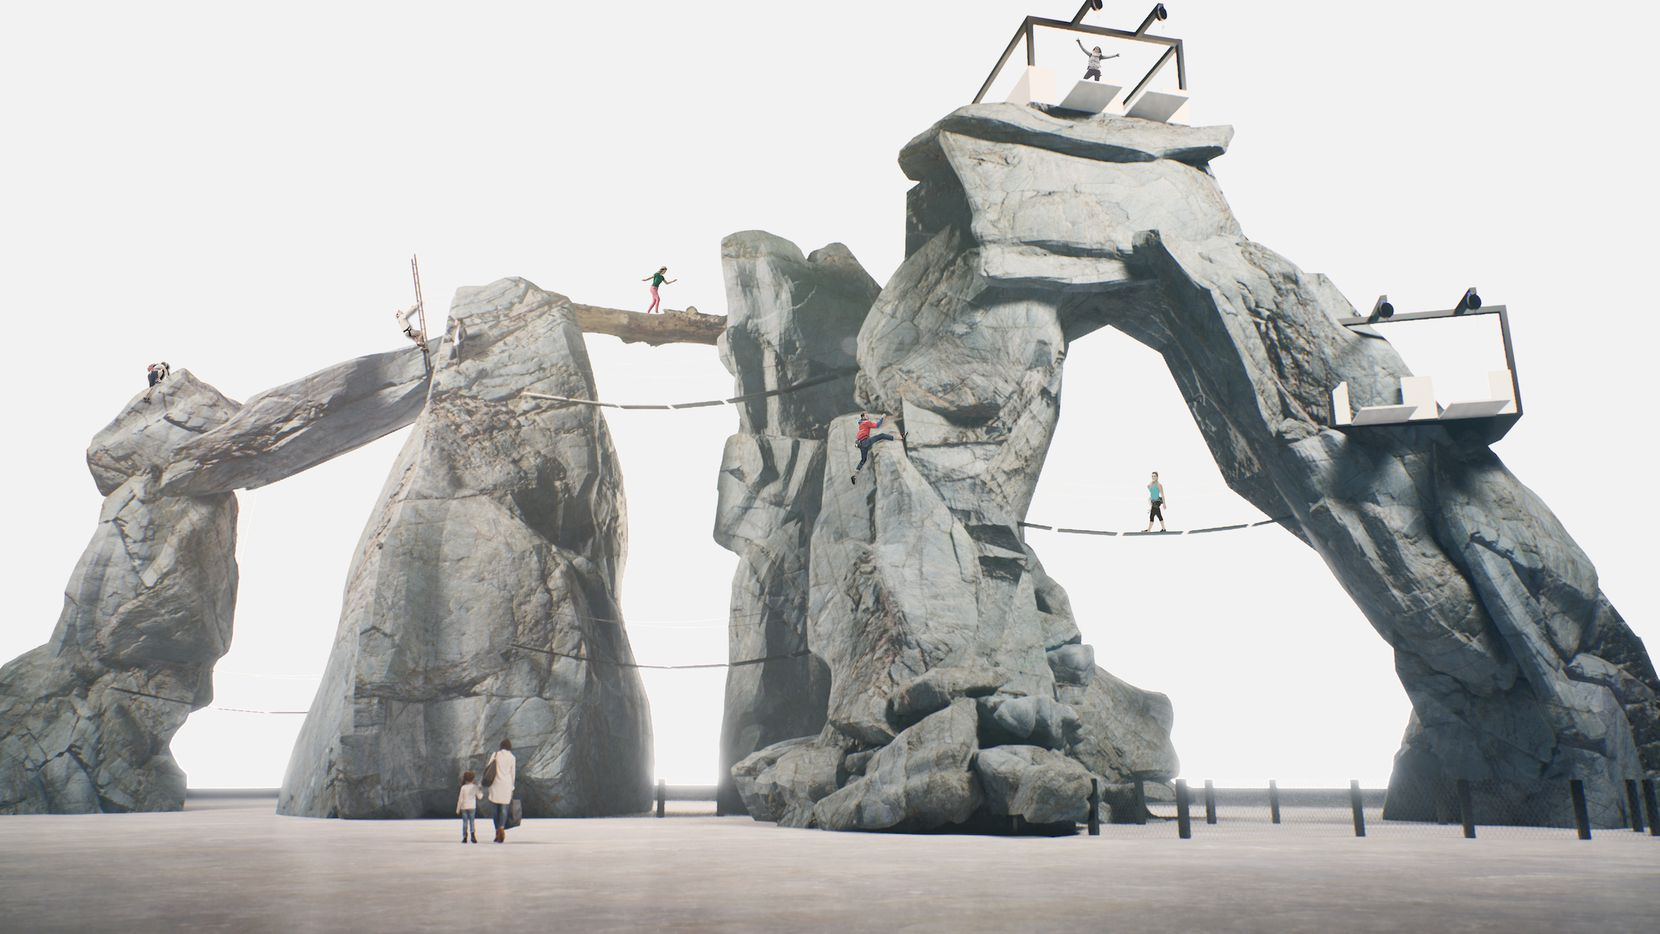 A rendering shows the rock climbing structures at Bolder Adventure Park, which is scheduled to open in 2022 in Grand Prairie.